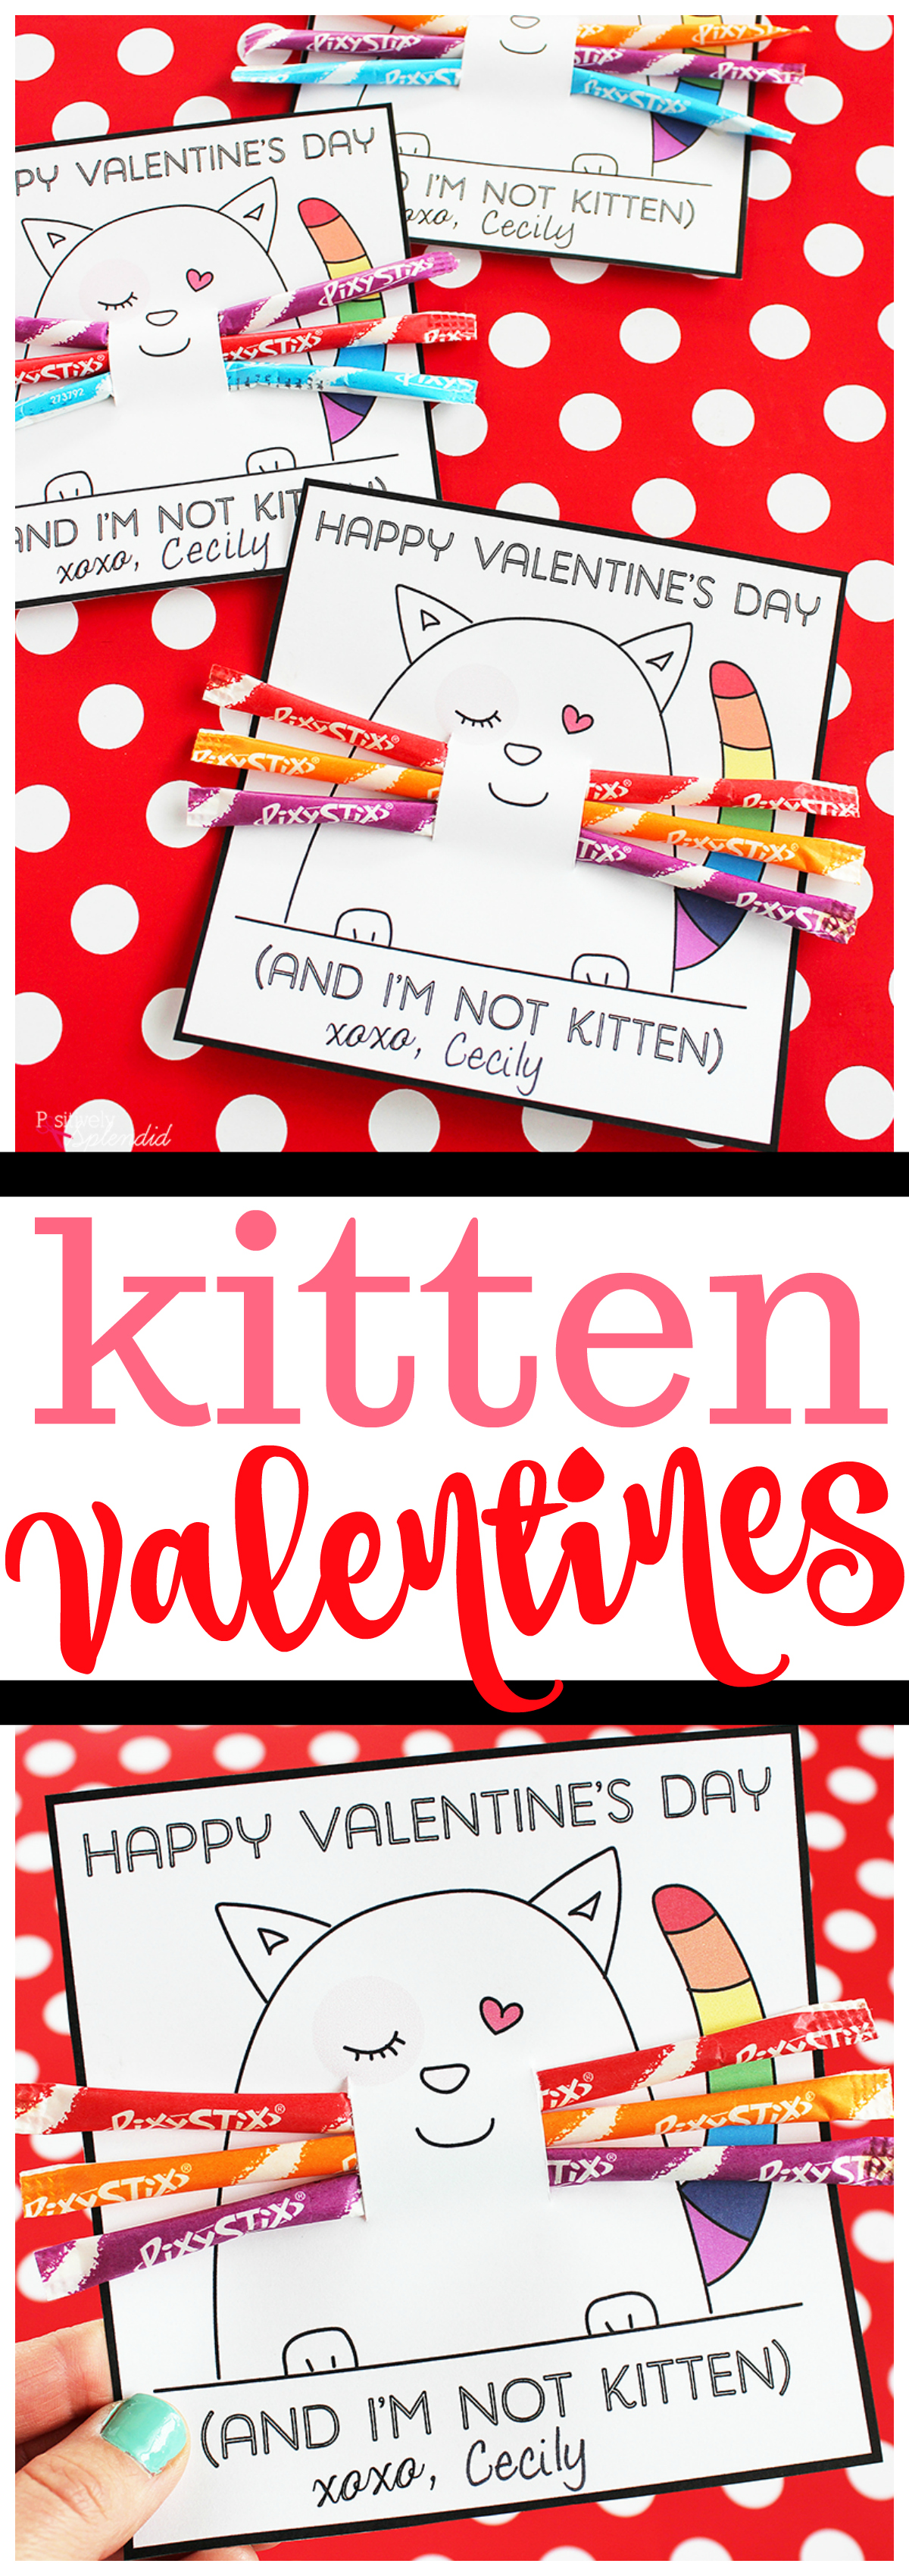 Kitten Valentines Day Card for Kids